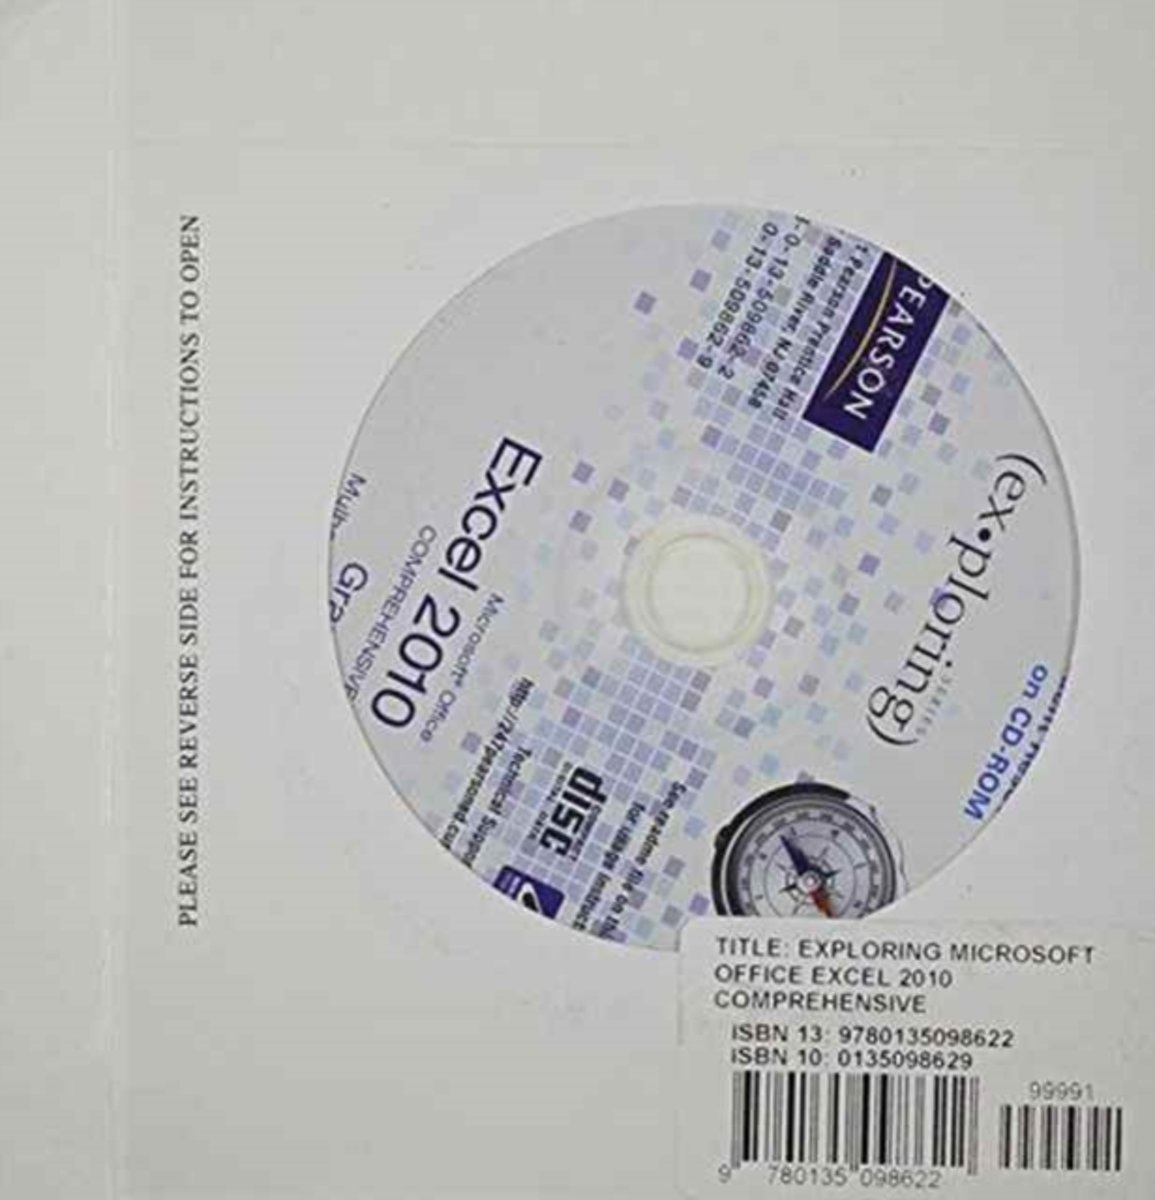 Student CD for Exploring Microsoft Office Excel 2010 Comprehensive